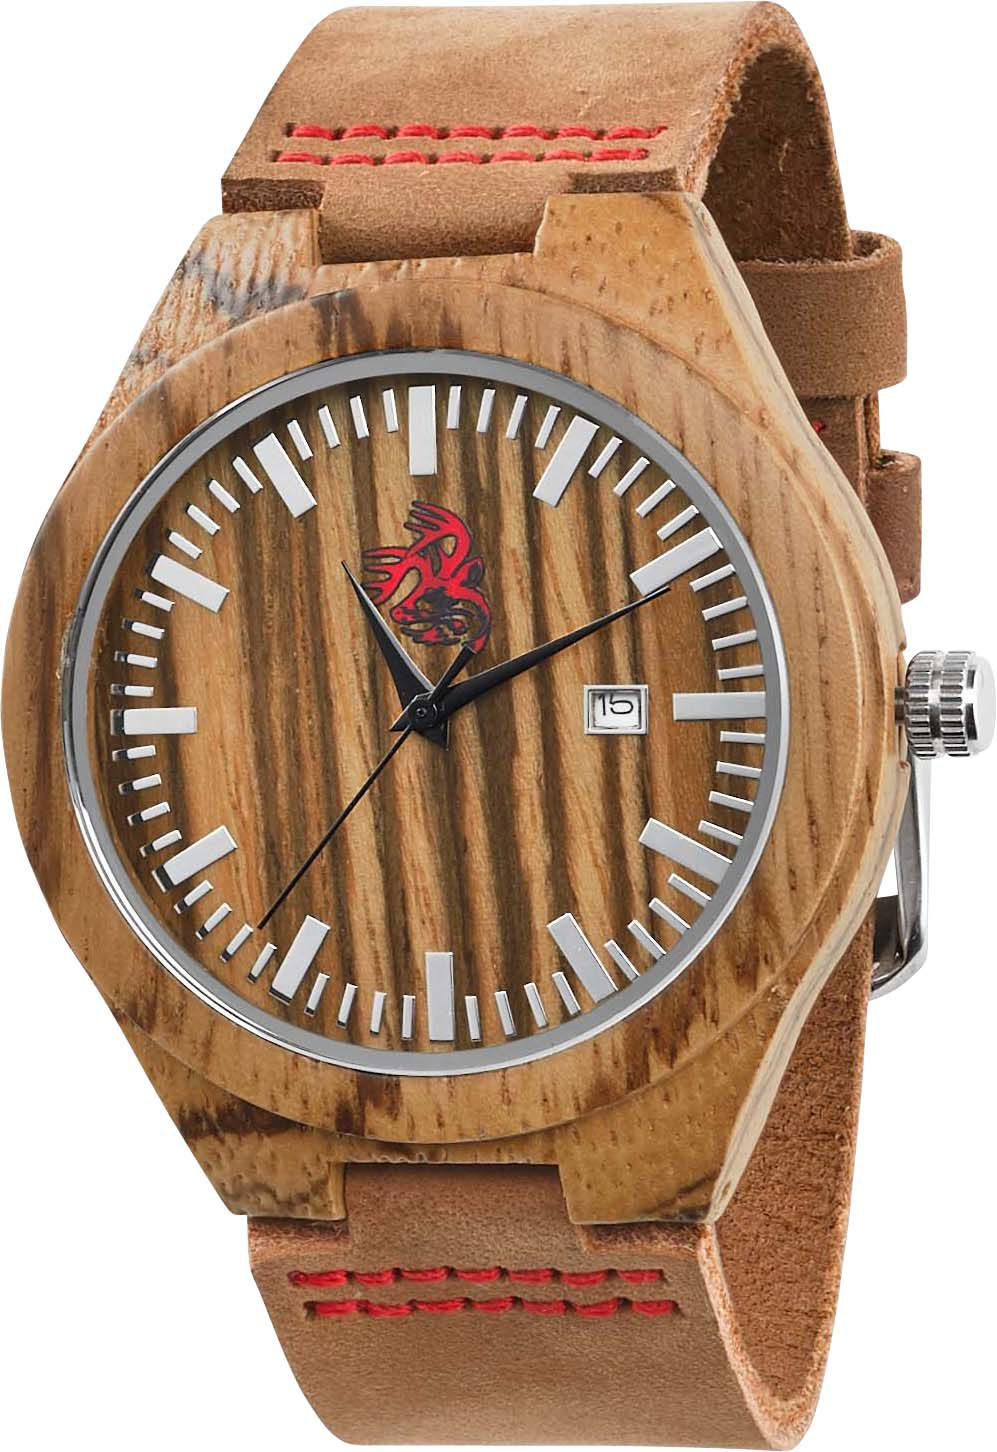 wine zoom watches watch enthusiast whiskey preparing barrel asp